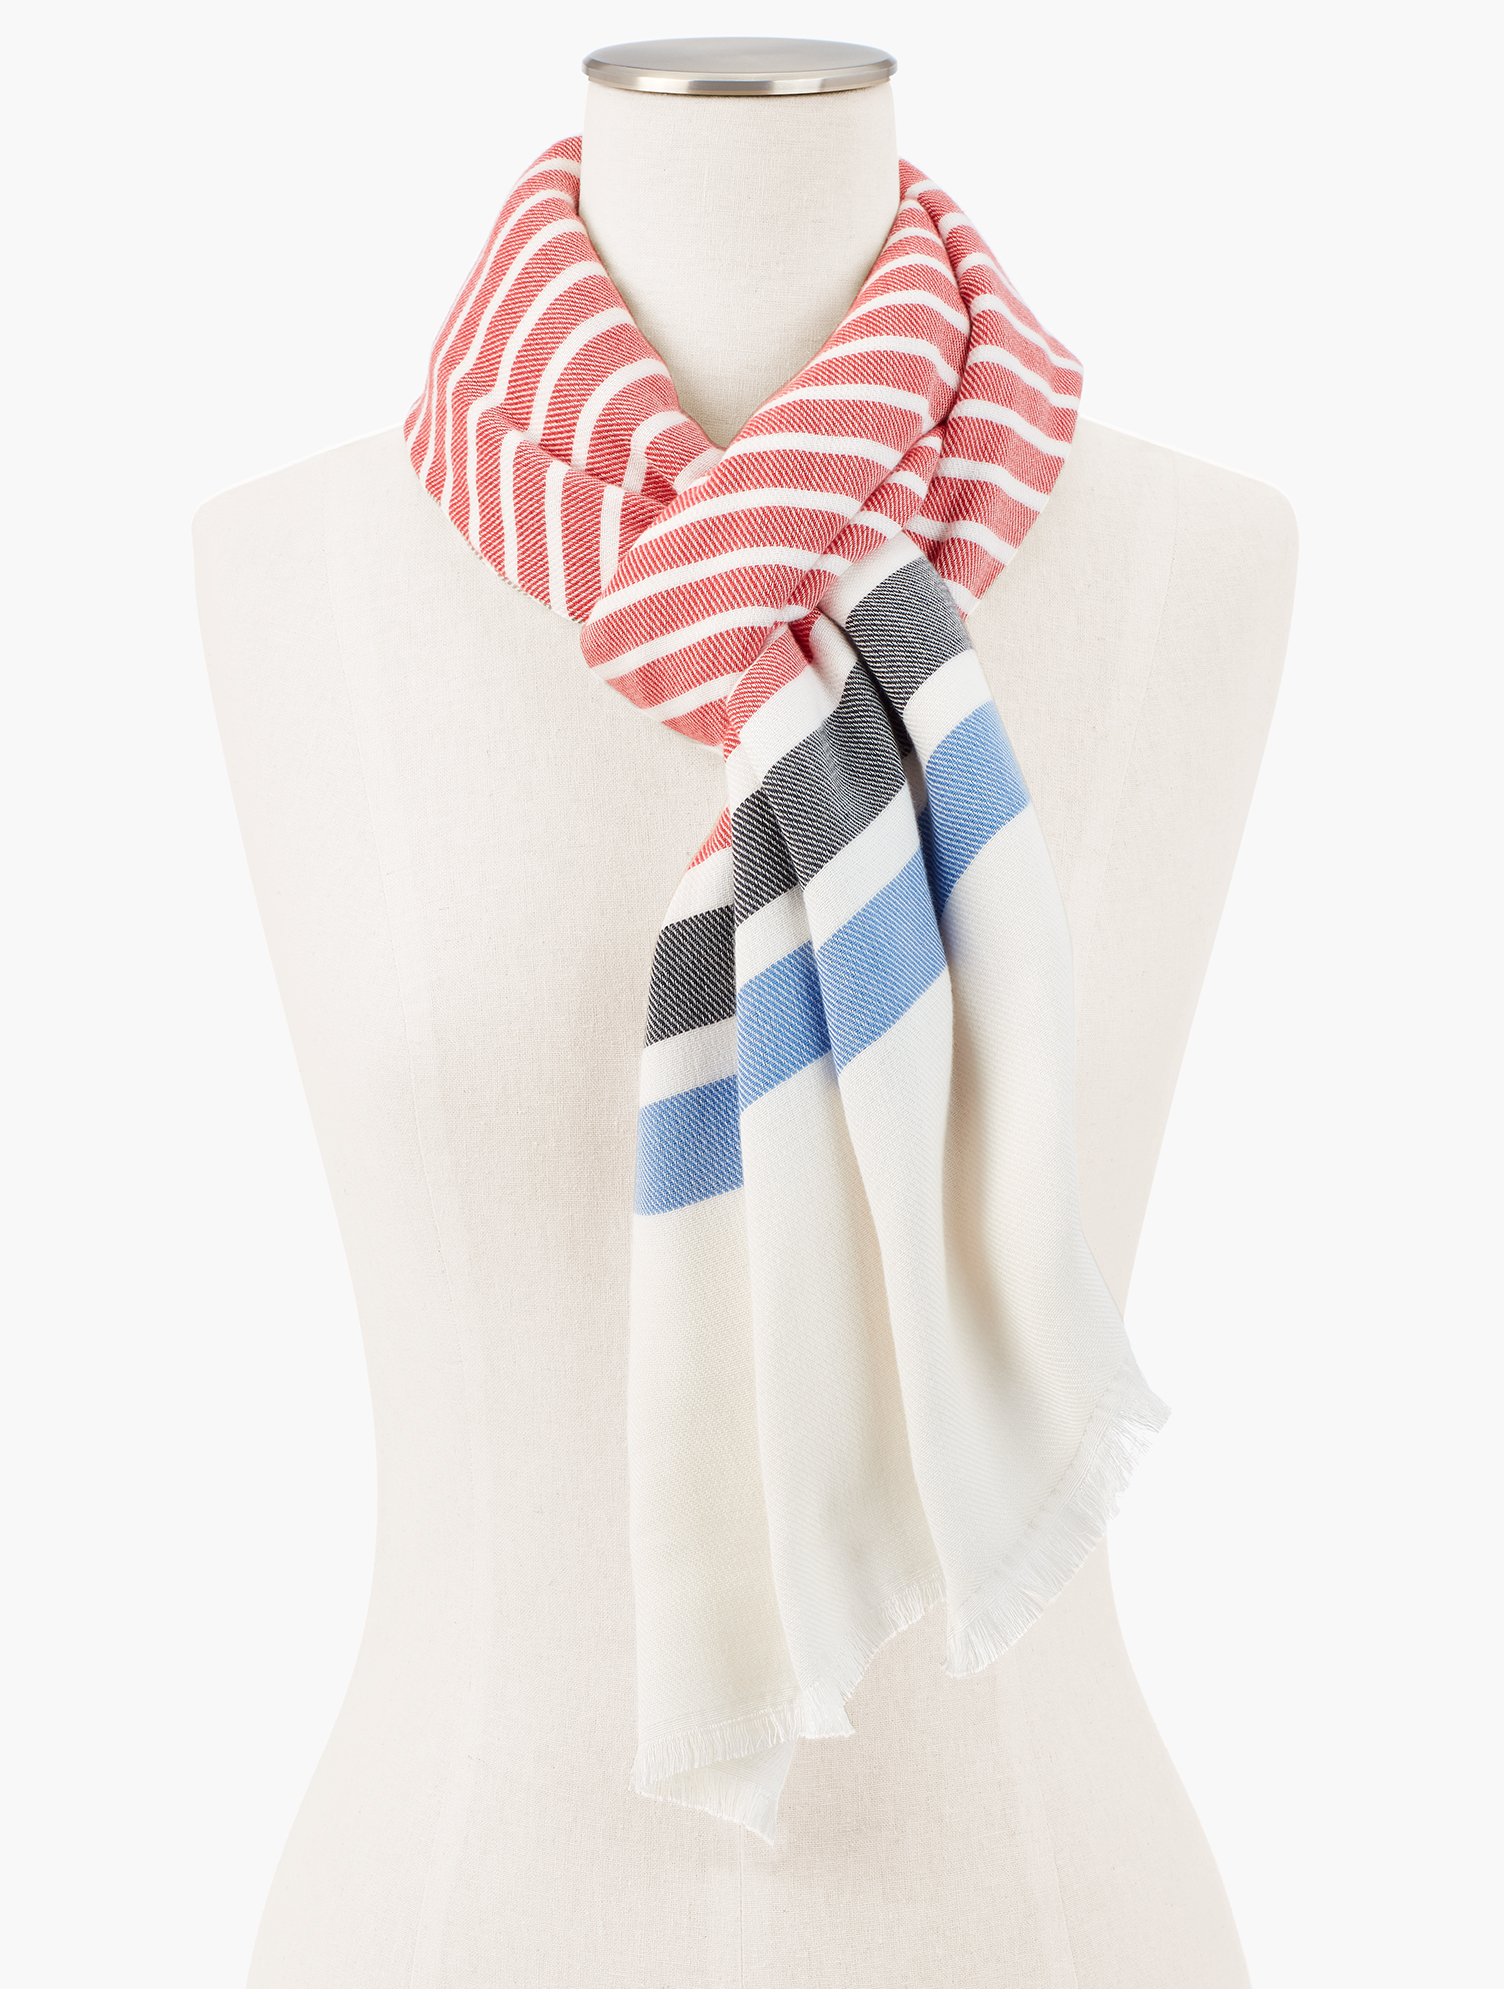 Stripes and a pop of color, This oblong scarf has endless styling possibilities. features Imported Fit: 27 inches X 72 inches Material: 52% cotton; 48% modal Care: Hand wash; Line dry Stripe Oblong Scarf - Bright Apple - 001 Talbots